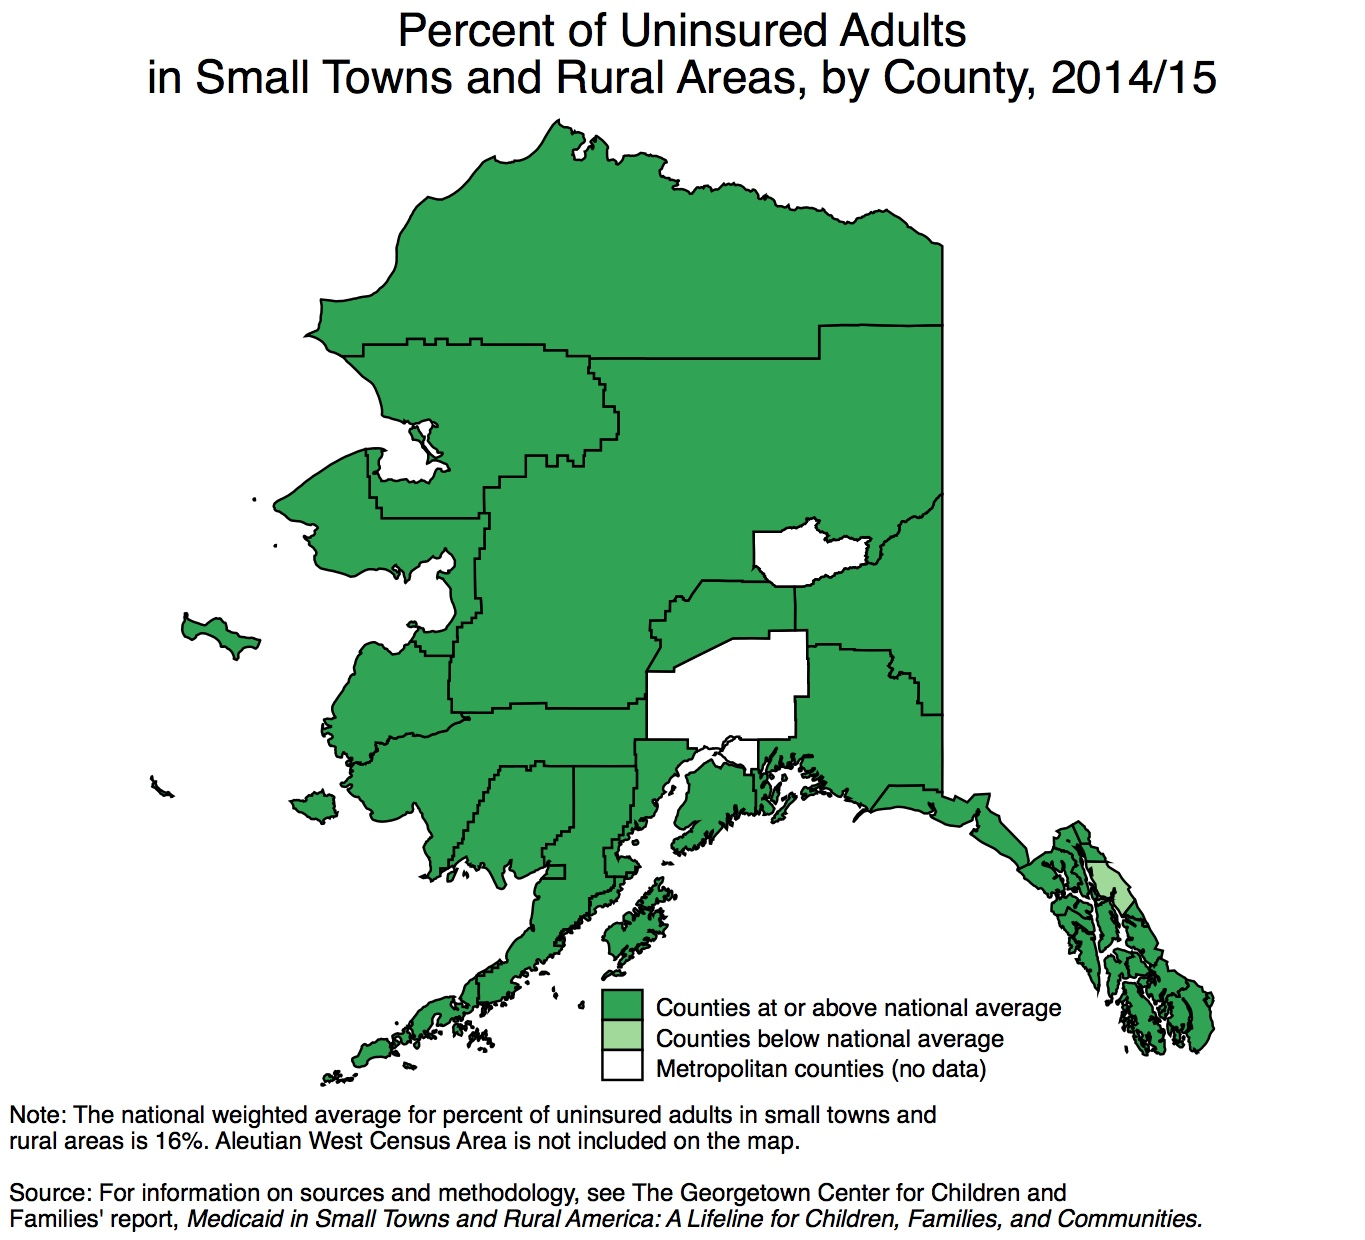 State Data On Adult Health Coverage In Small Towns And Rural Areas